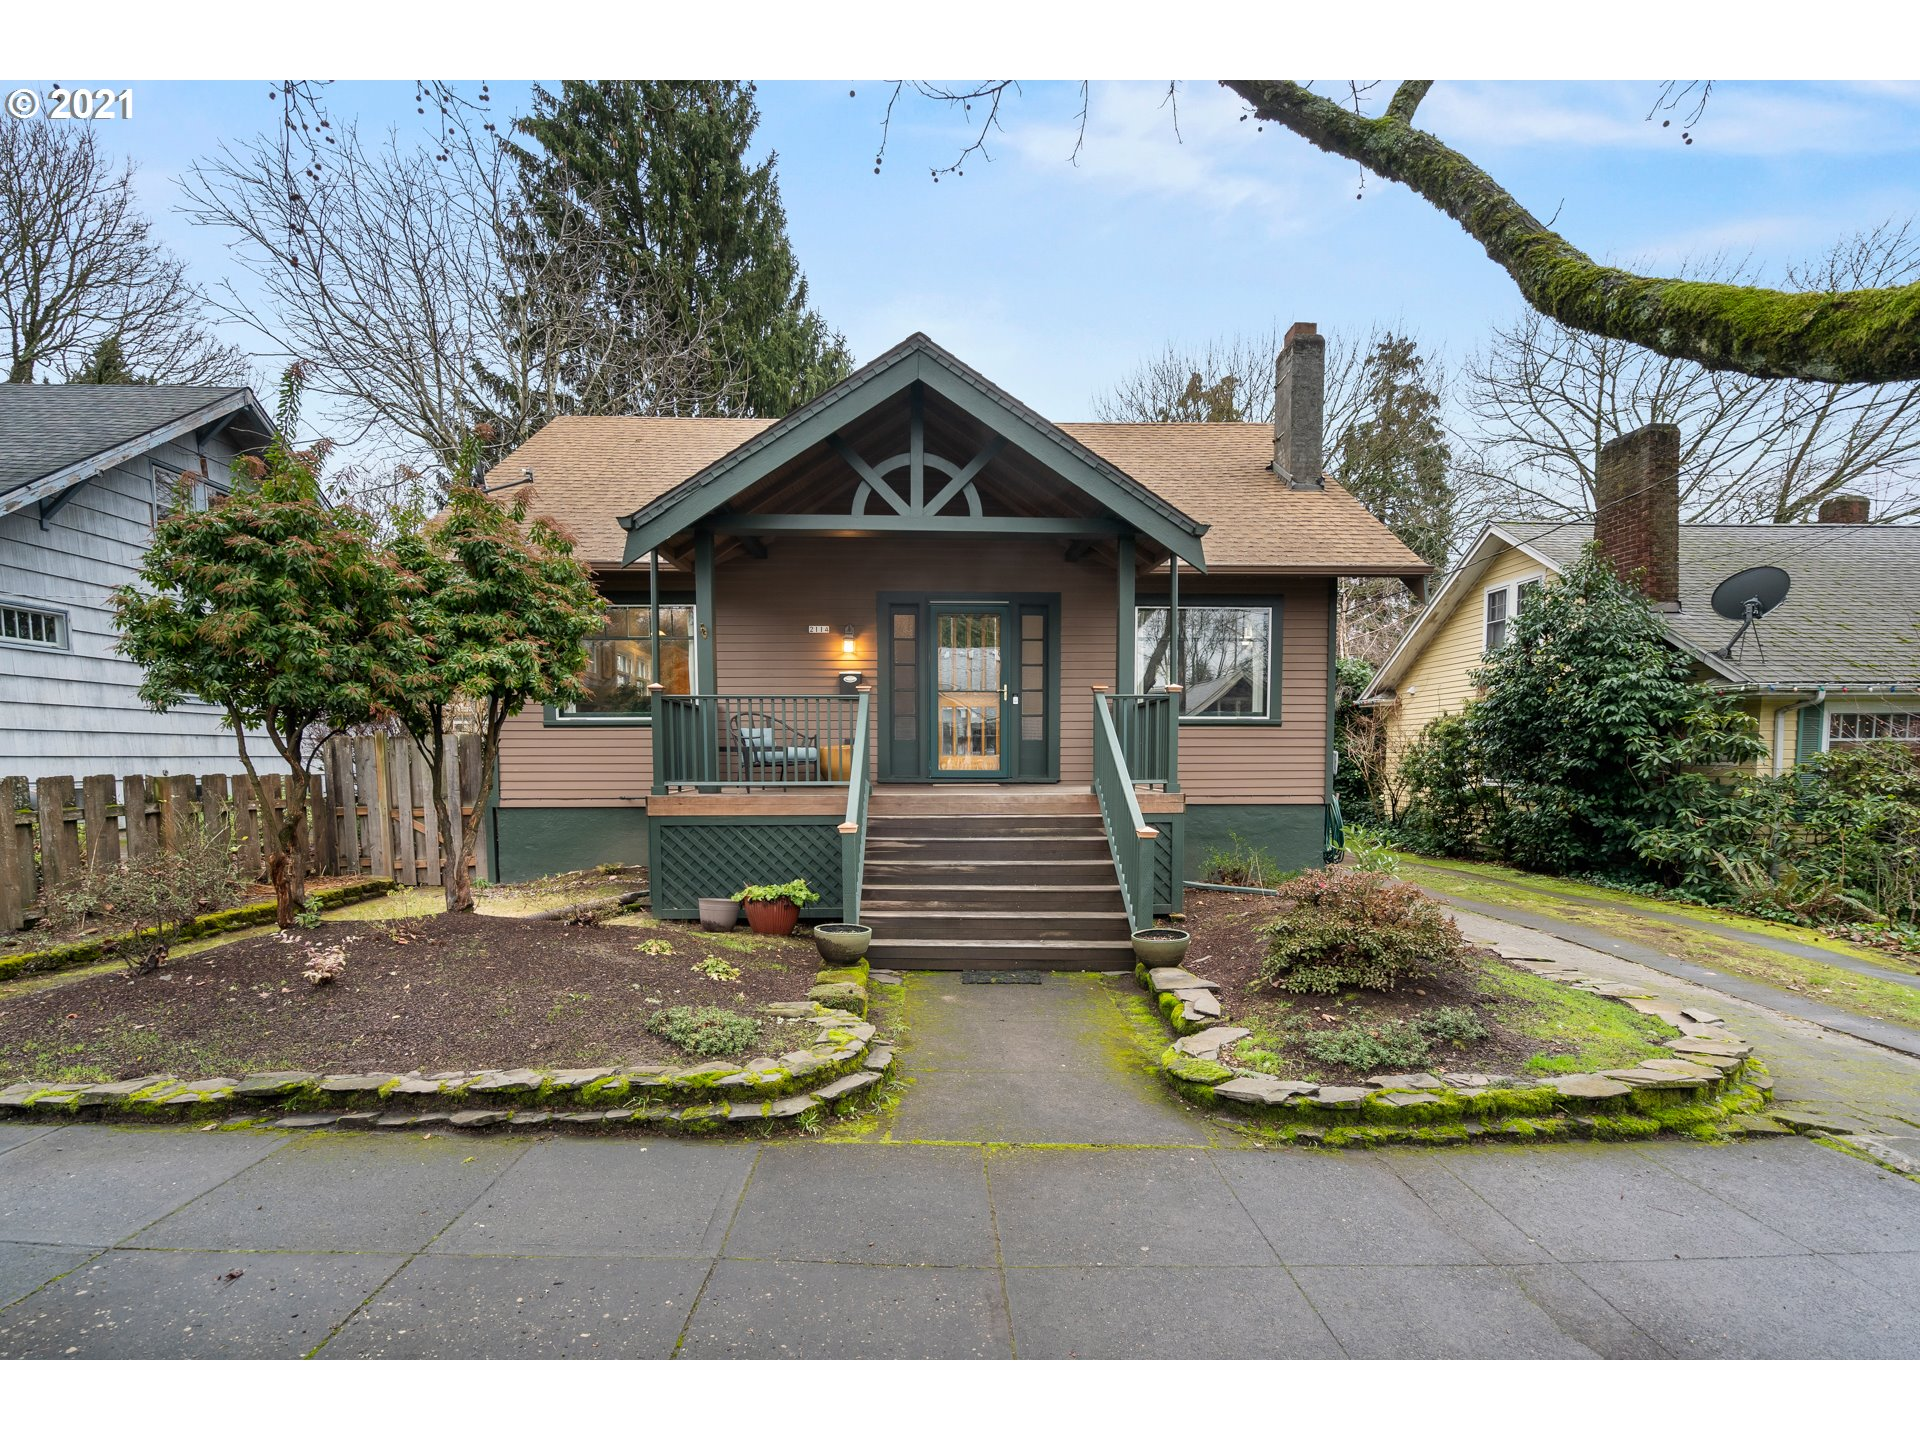 Charming house in Rose City Park, good usable backyard, nice detached garage with storage above, lots of potential in basement. [Home Energy Score = 6. HES Report at https://rpt.greenbuildingregistry.com/hes/OR10052588]